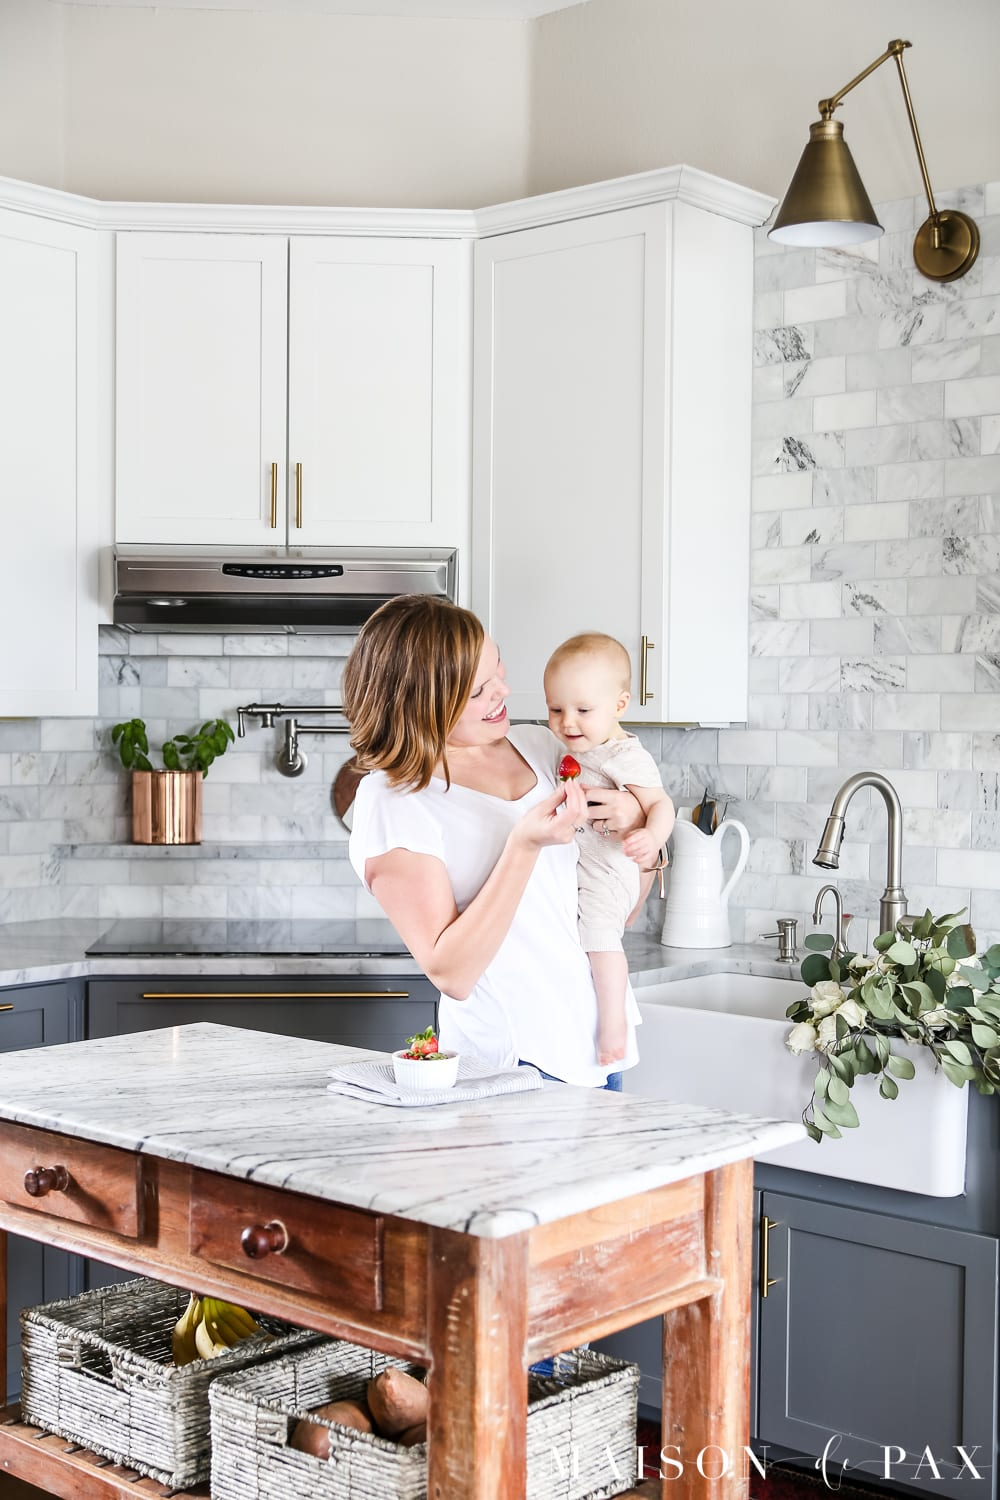 Gray and white cabinets and marble countertop kitchen remodel- Maison de Pax